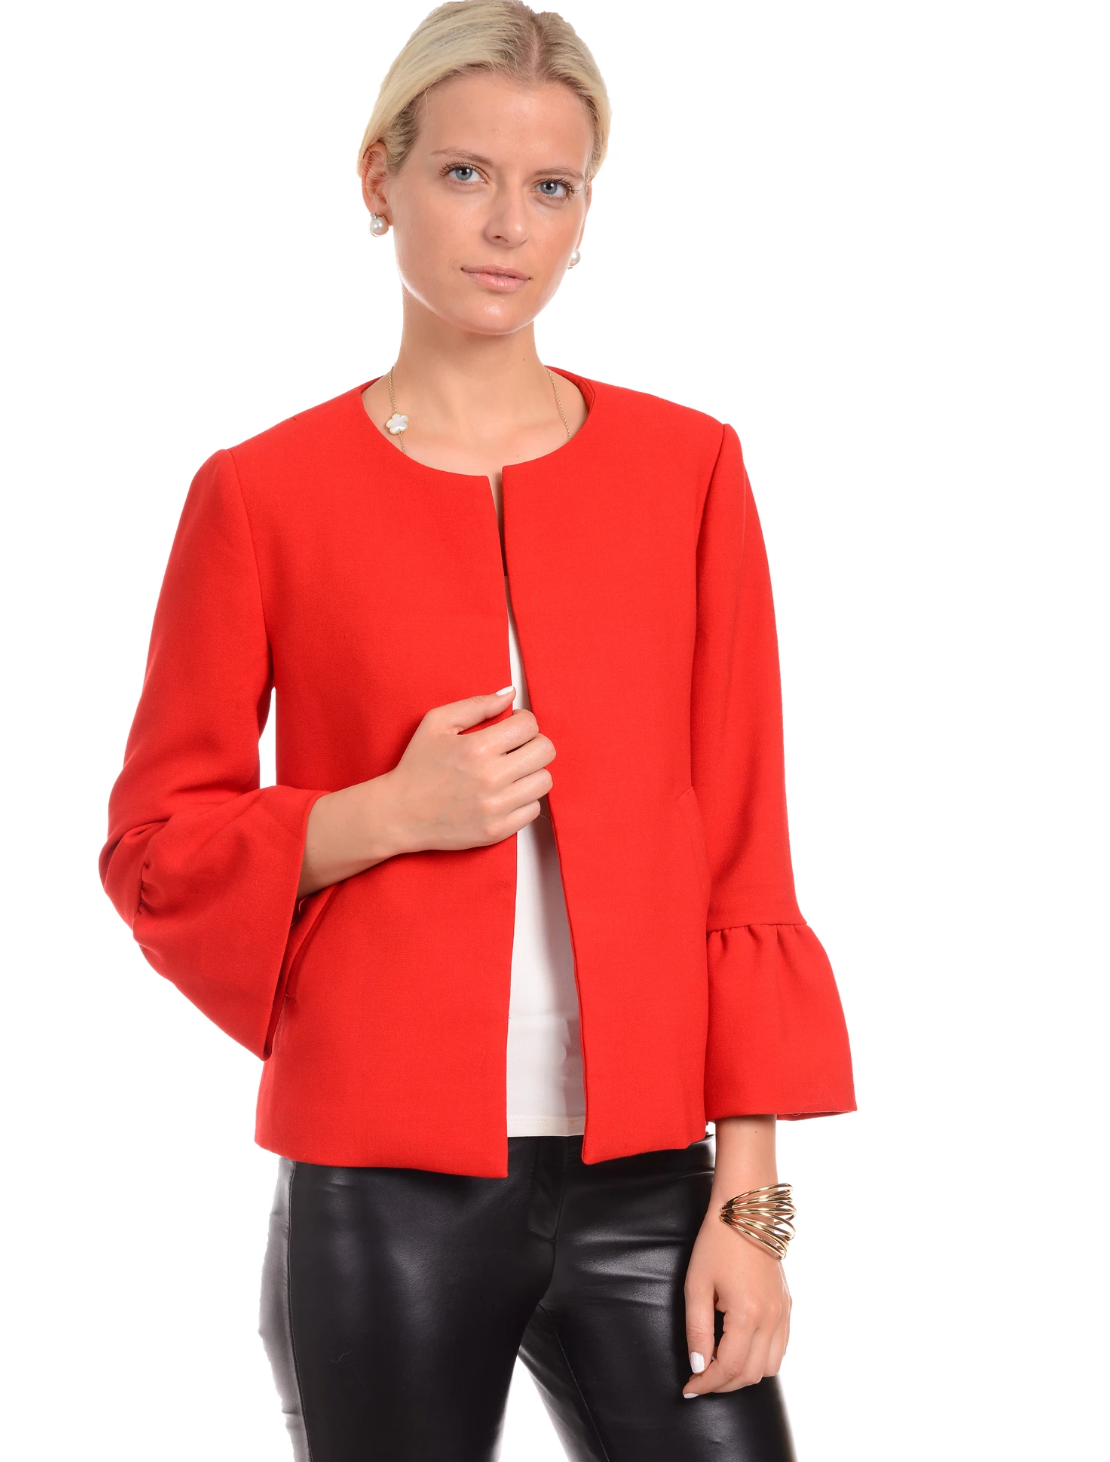 Patty Kim Margaux Jacket - Red